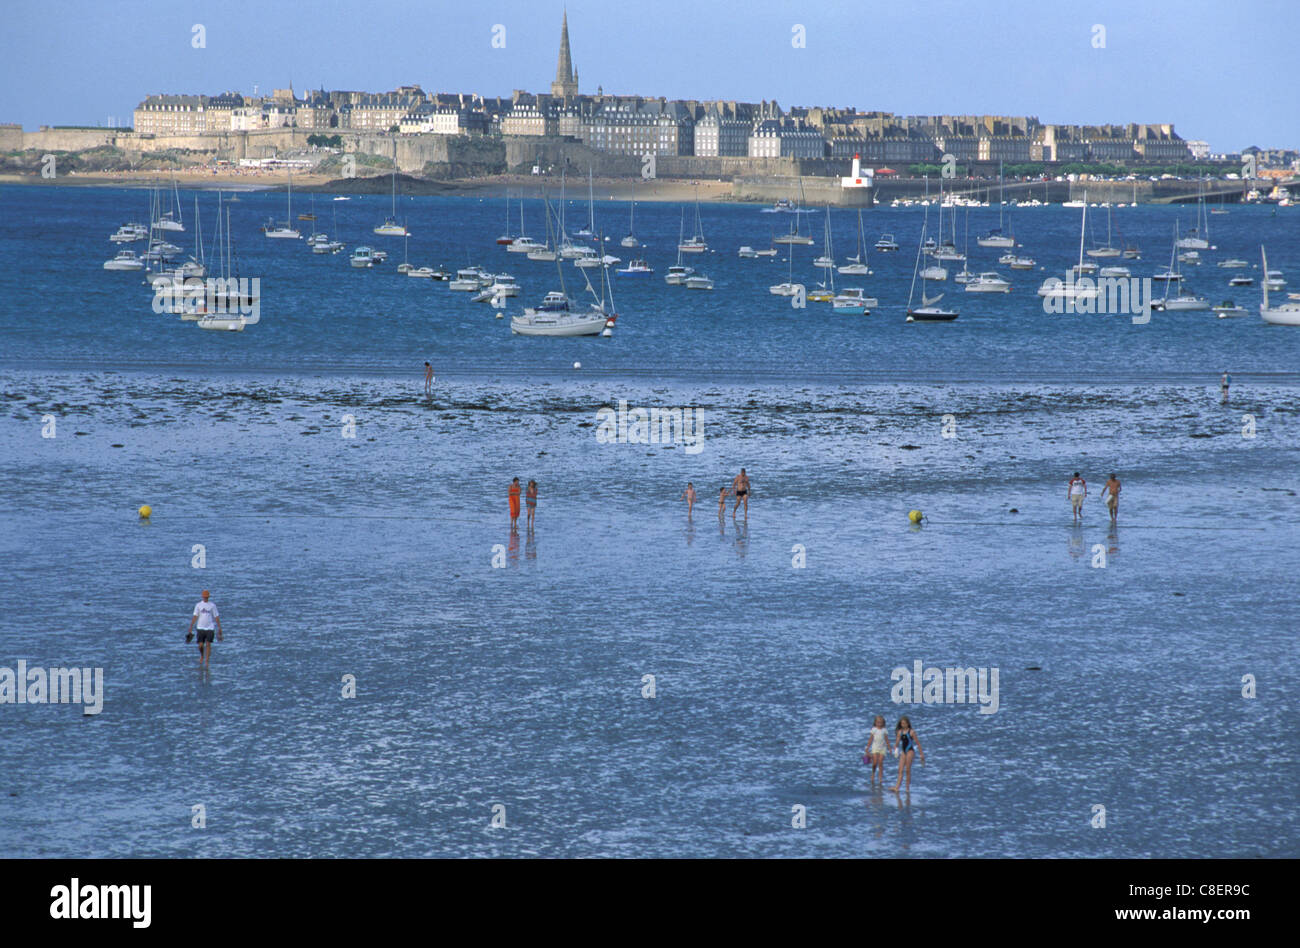 People, low tide, beach, View, from Dinard, St. Malo, Brittany, Bretagne, France, Europe, sea - Stock Image